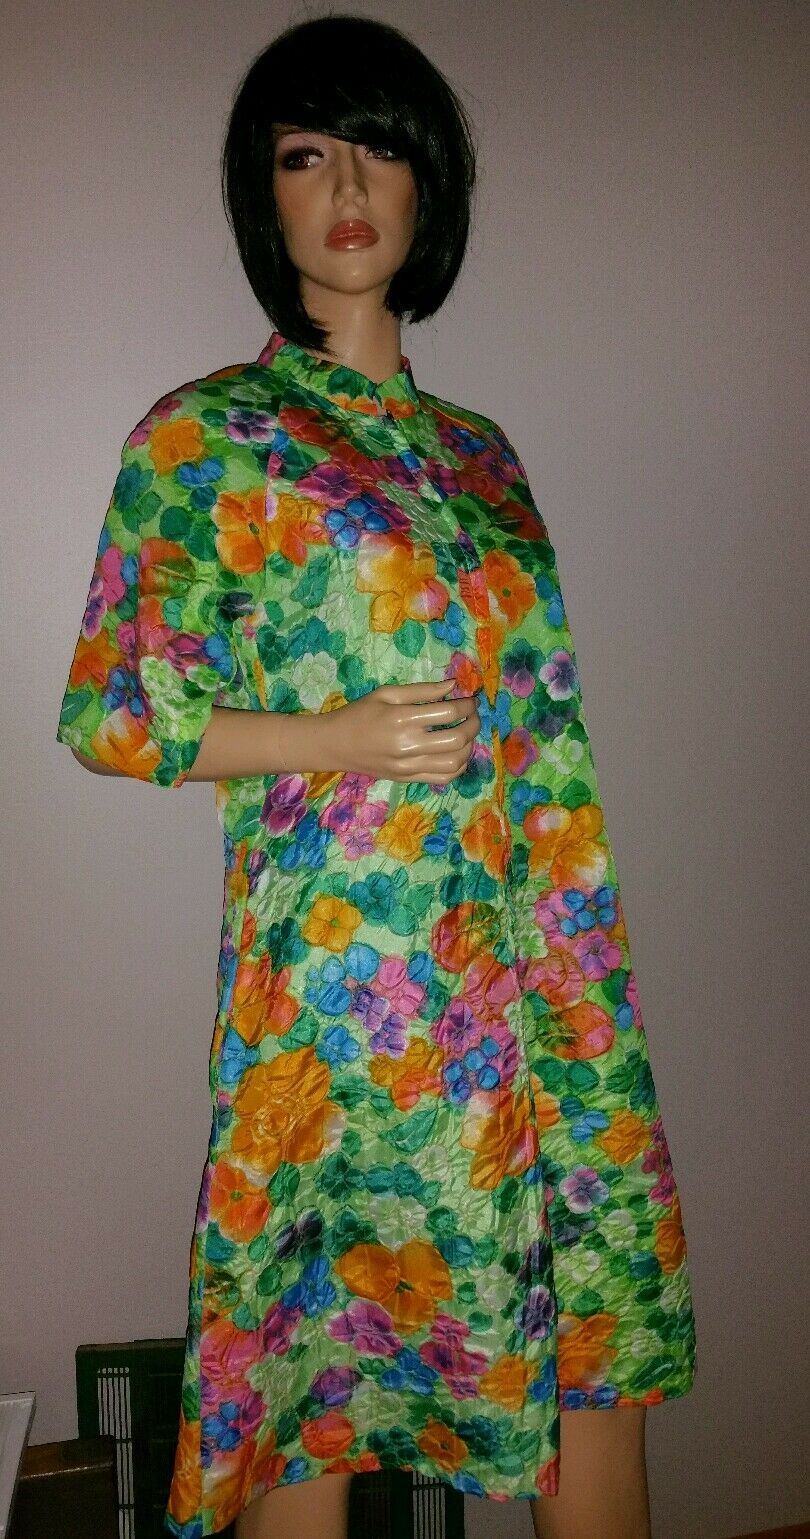 a907f14a4cc LYNN BRIGHT WATERCOLOR FLORAL ZIP SUMMER ROBE DAY COAT COVER UP S ...